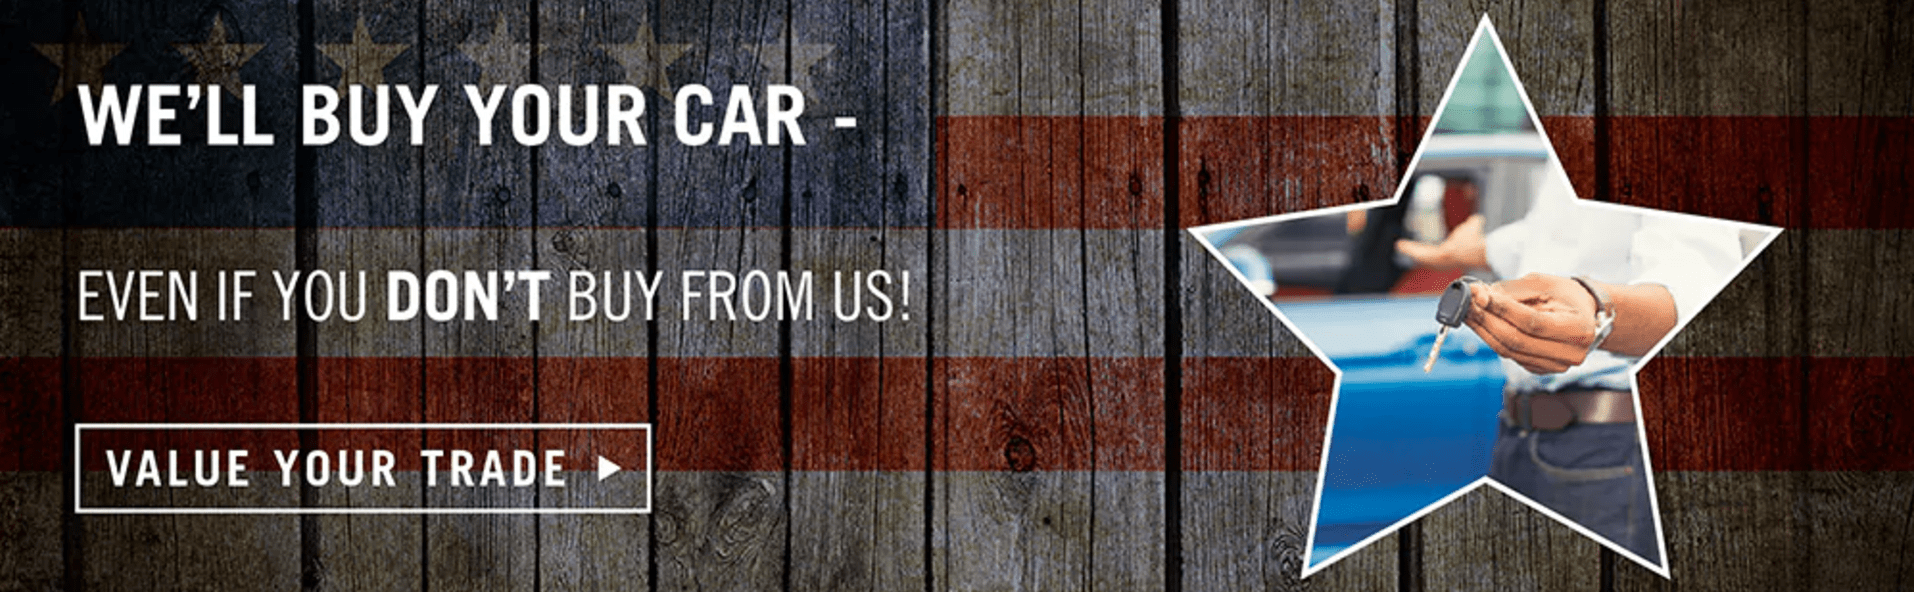 We Will Buy Your Car | Southtown Chrysler Dodge Jeep Ram